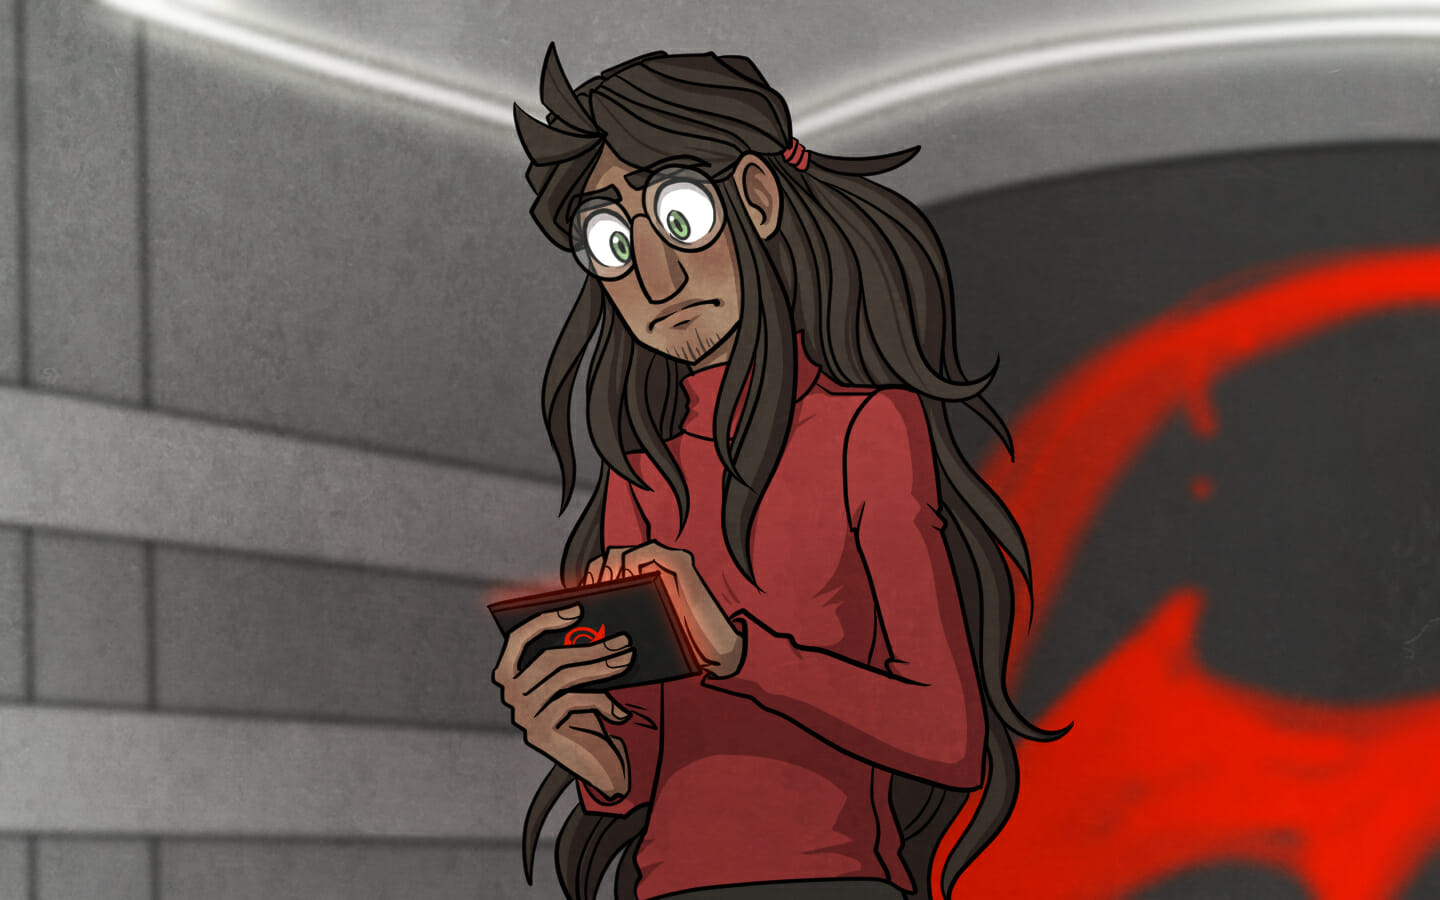 Timaeus looks at his Electro ID pensively.